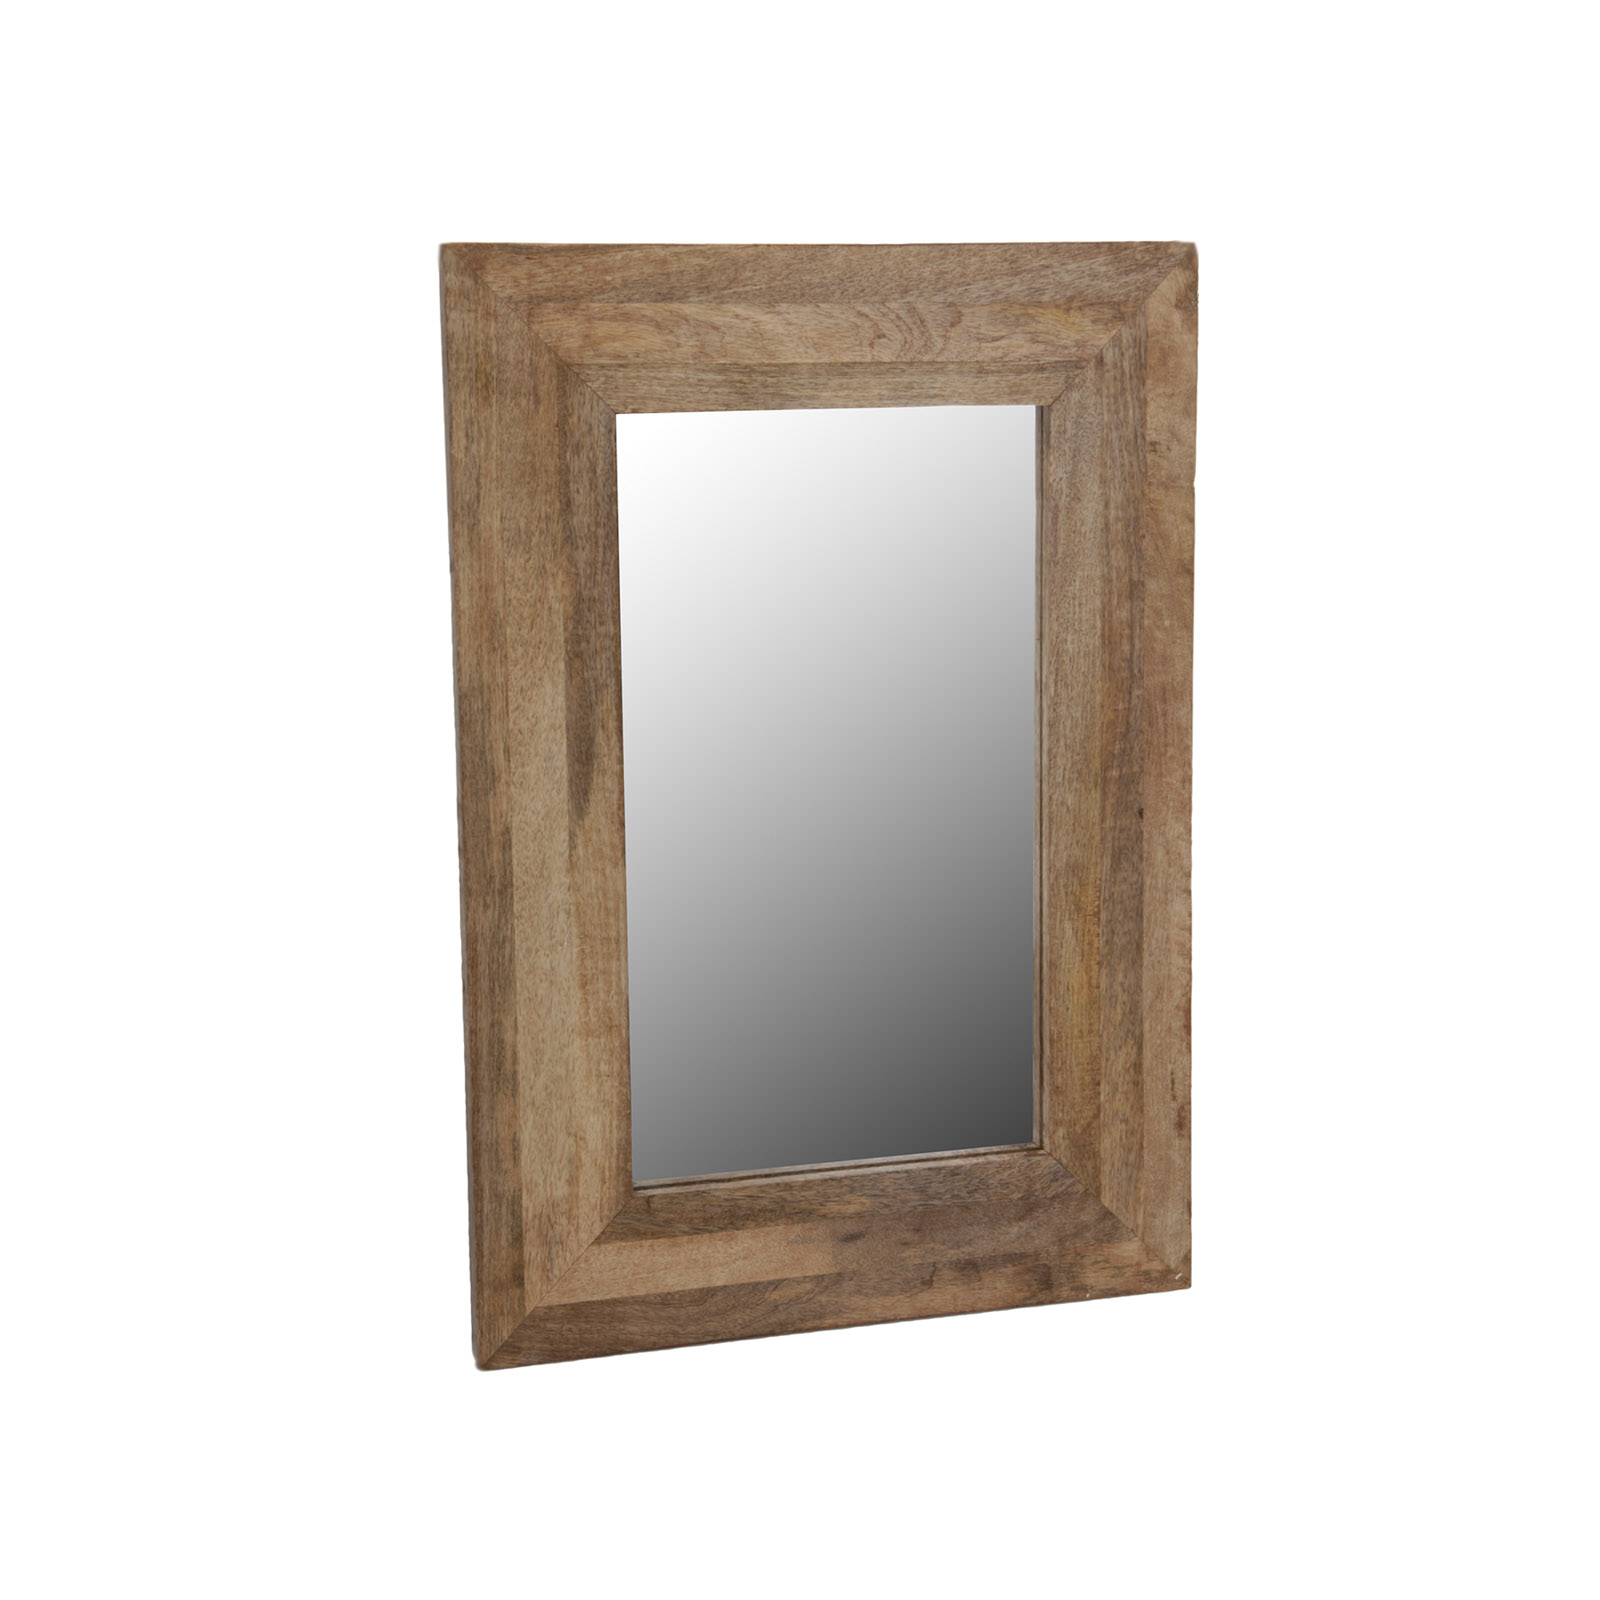 wall mirror wood frame mirror hanging mirror mango natural